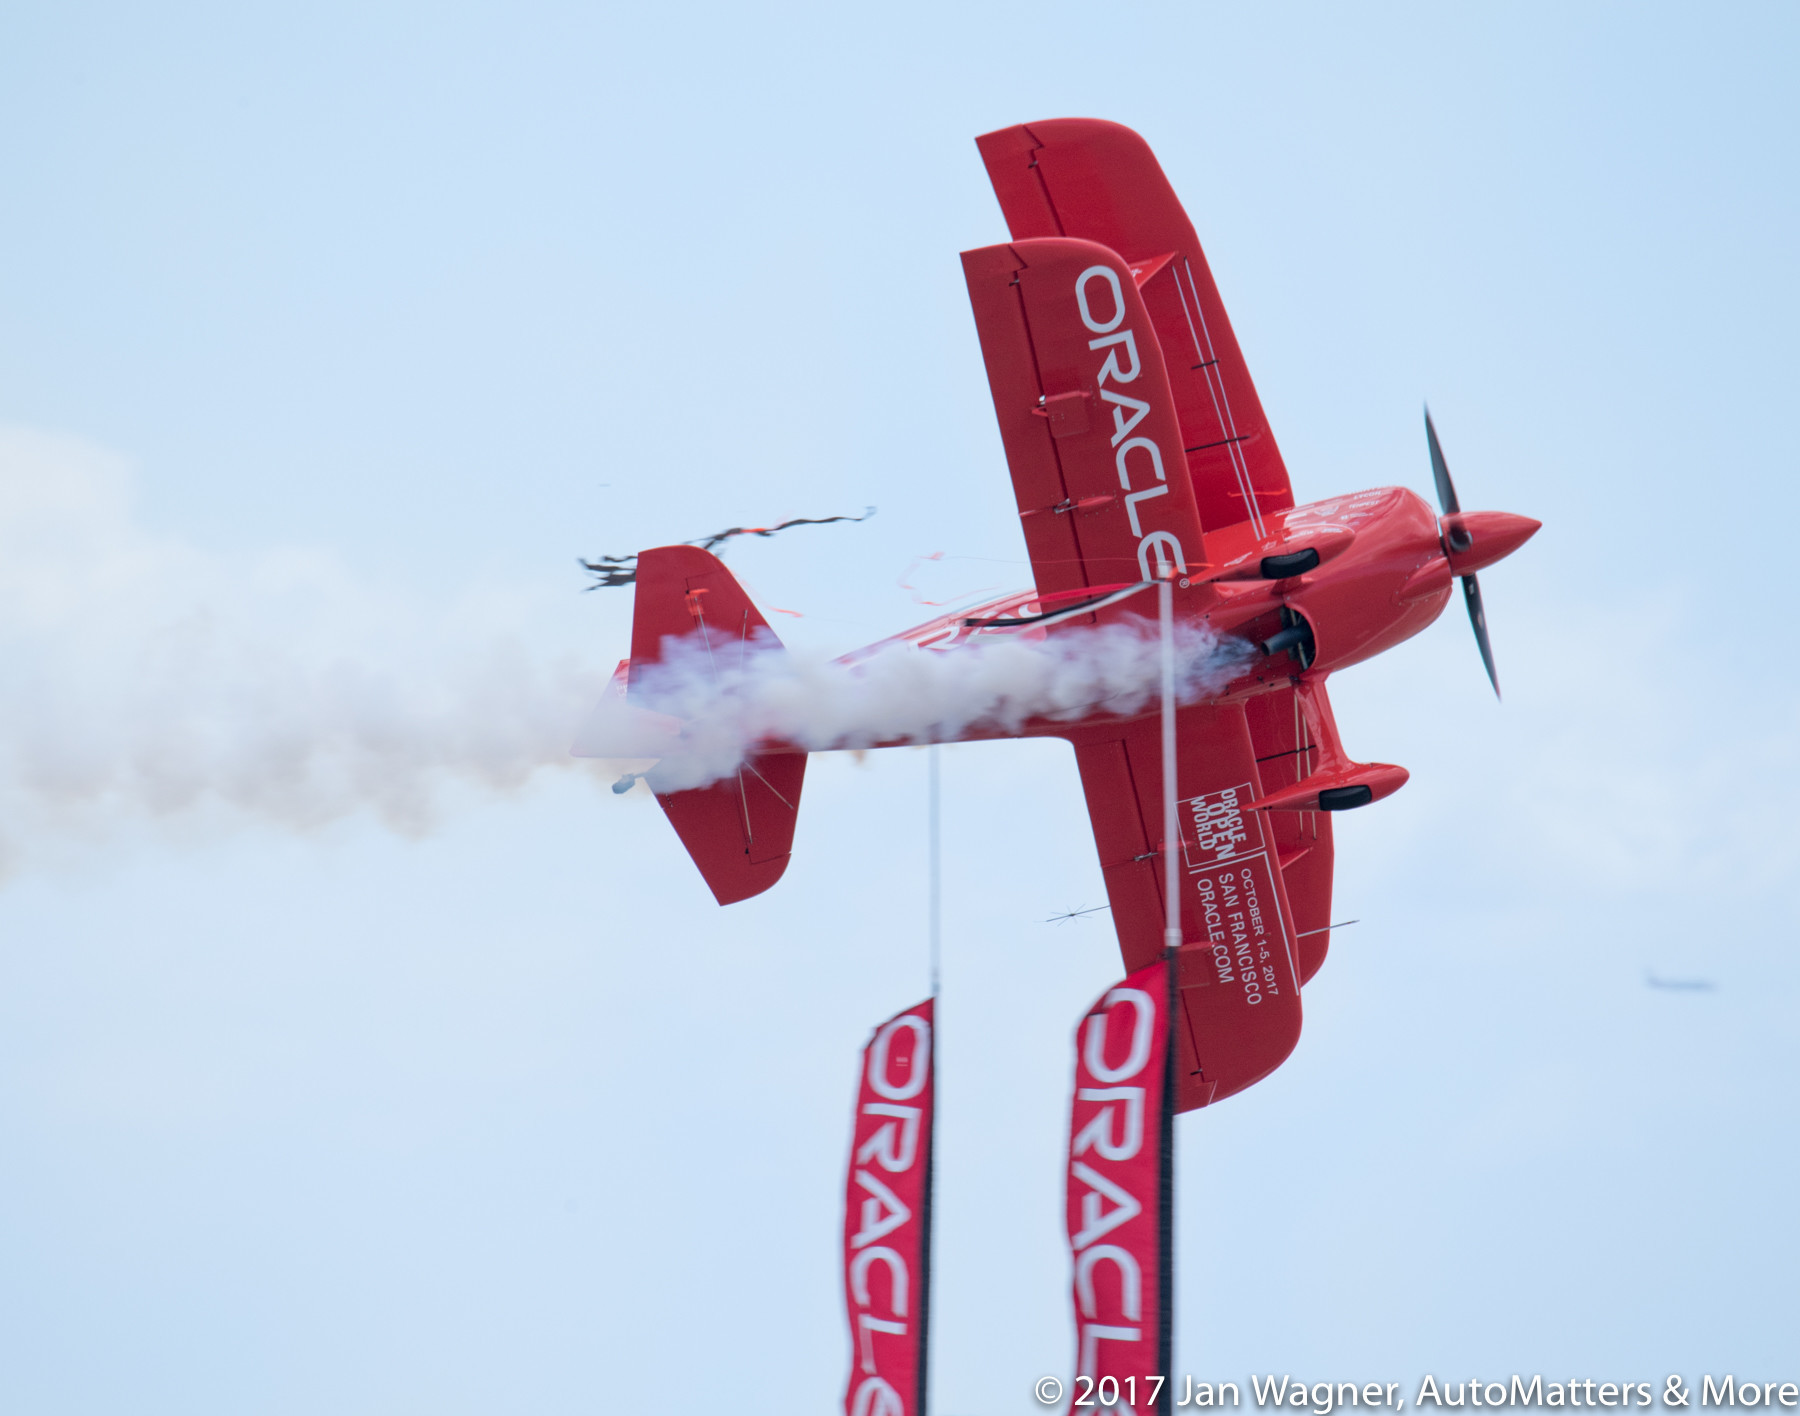 Sean Tucker flying his Oracle Challenger III aerobatic biplane through a ribbon suspended between two banners